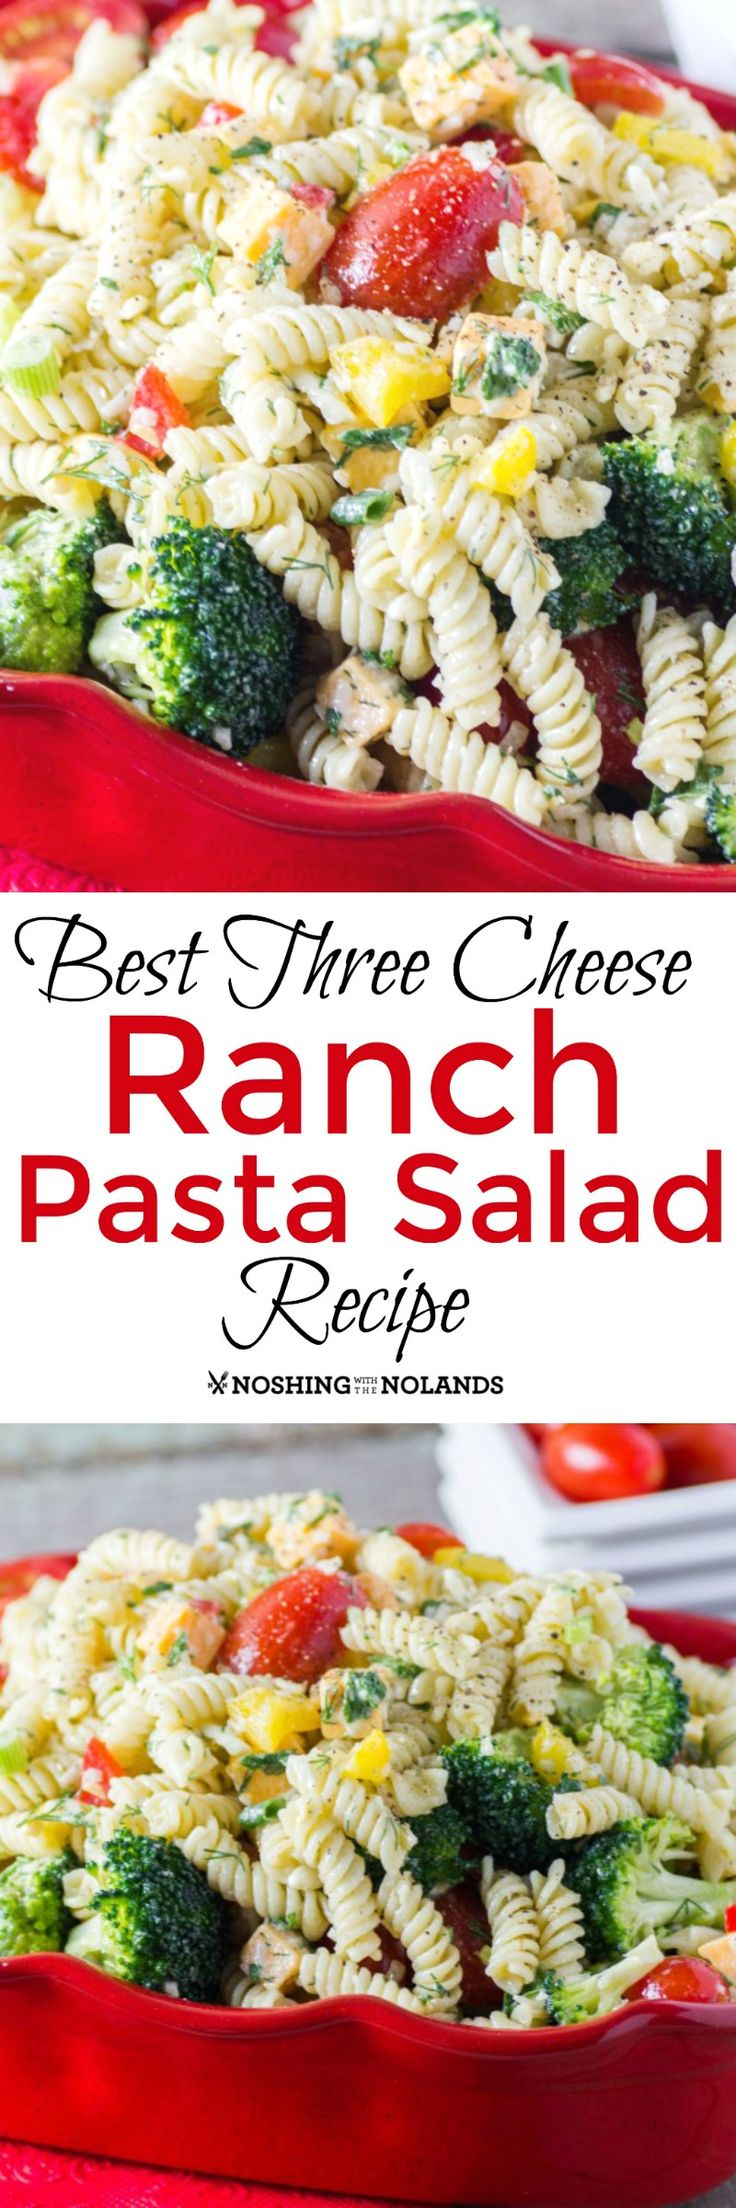 Best Three Cheese Ranch Pasta Salad Recipe by Noshing With The Nolands is the perfect addition to any meal no matter if it's summer or fall!